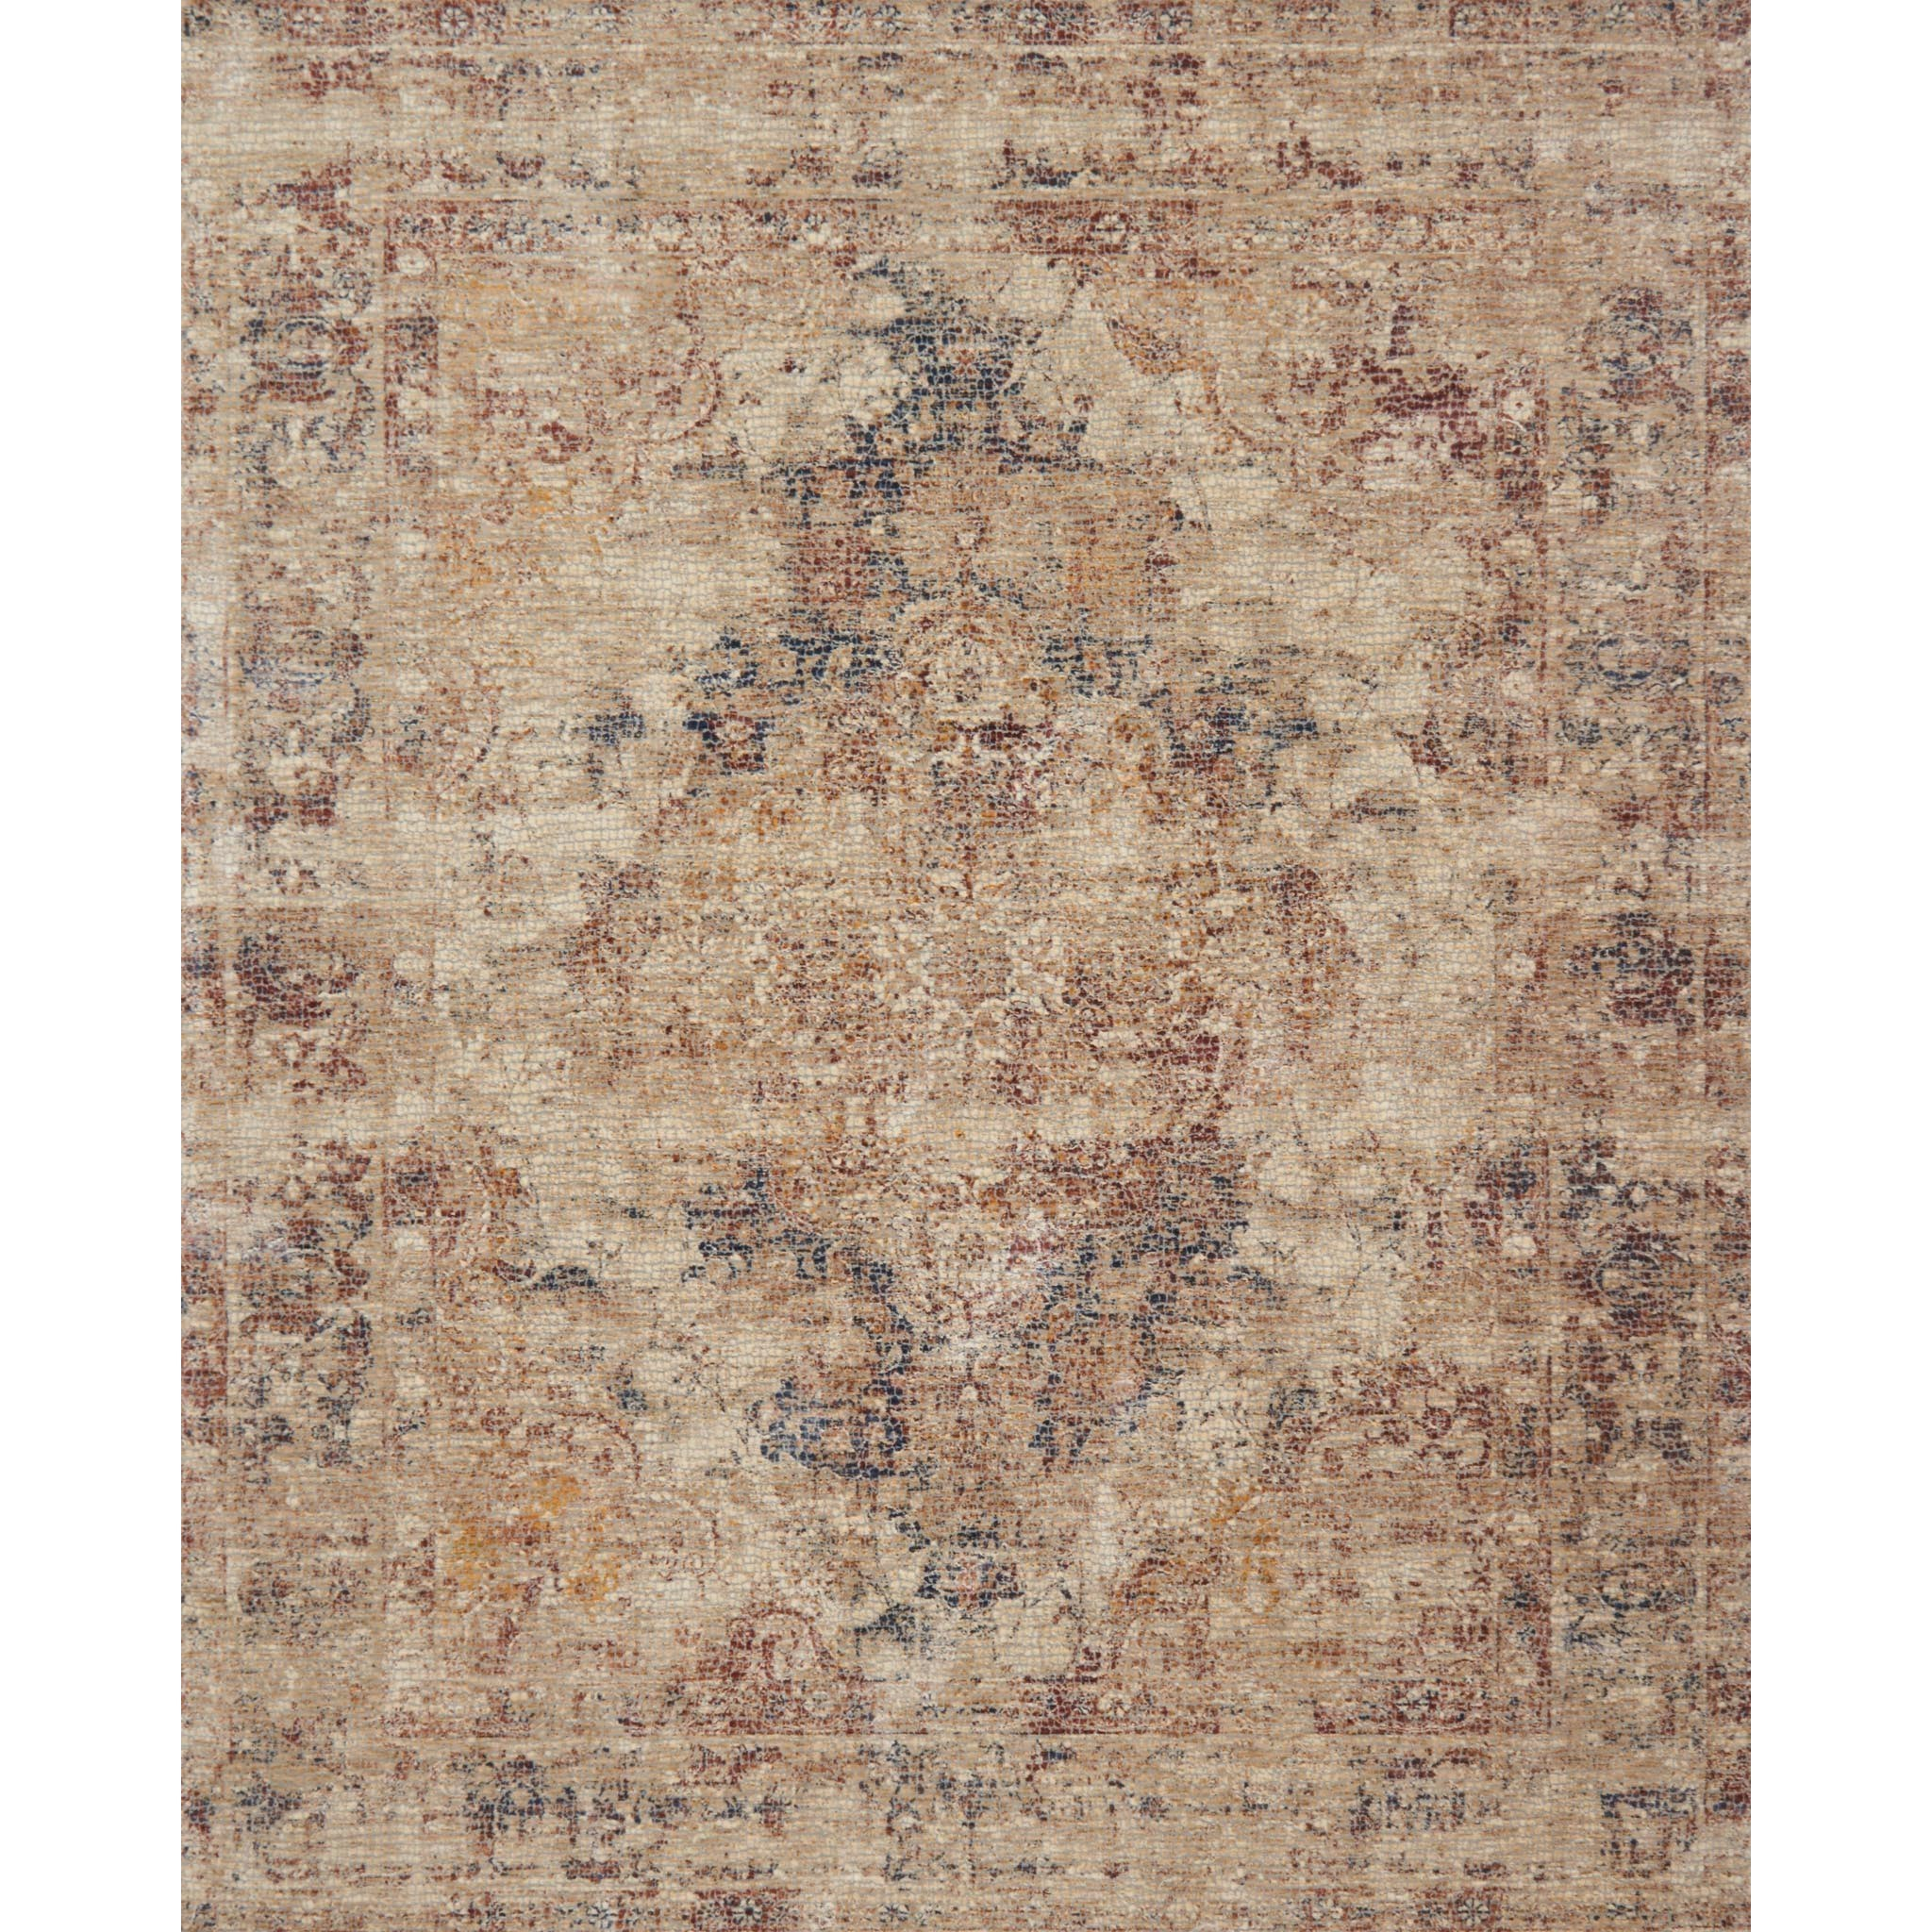 """Porcia 2'-8"""" X 12' Runner by Loloi Rugs at Virginia Furniture Market"""